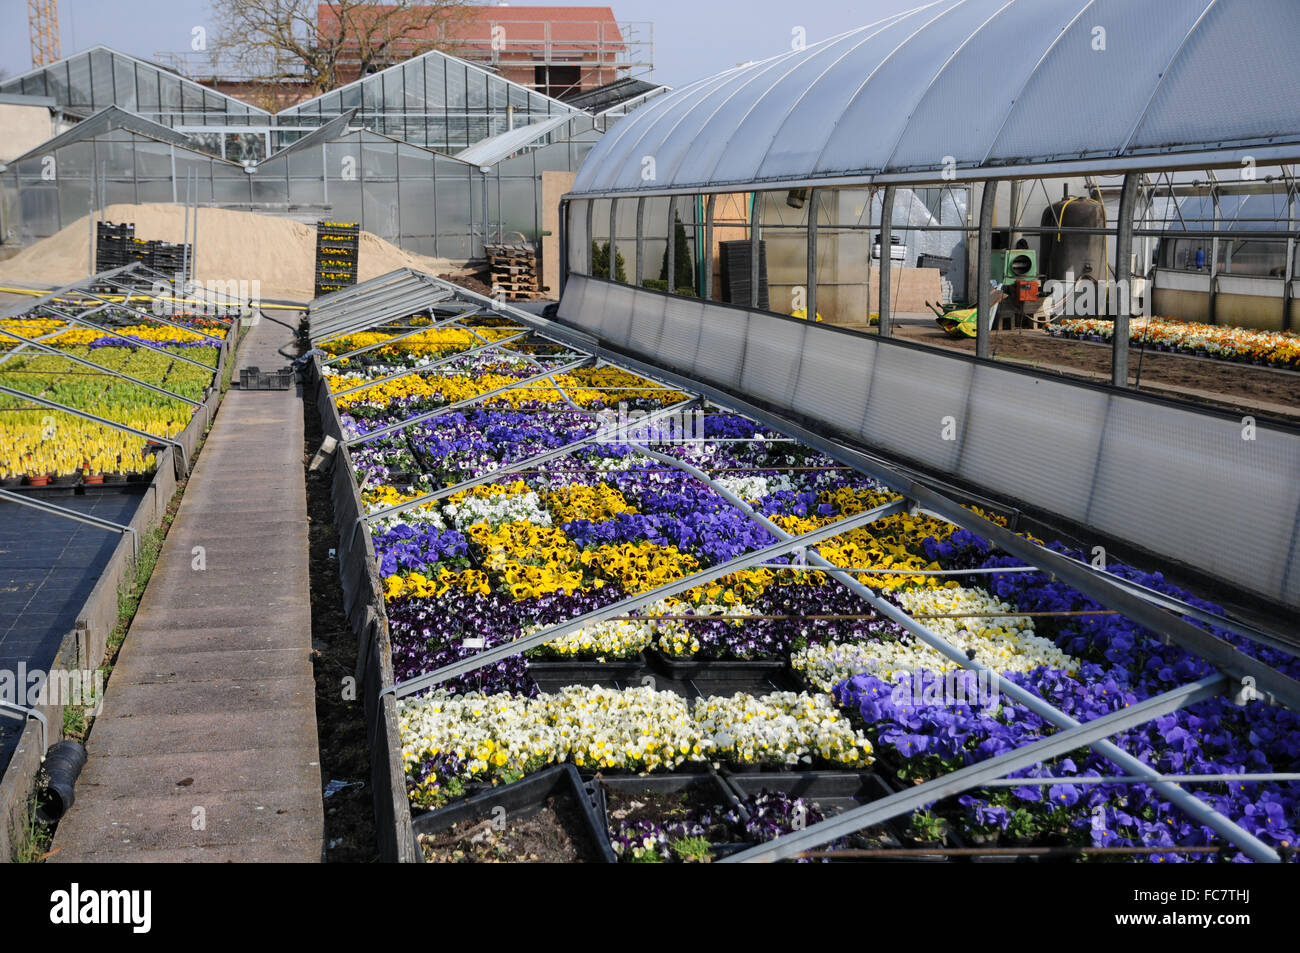 Pansies in nursery - Stock Image